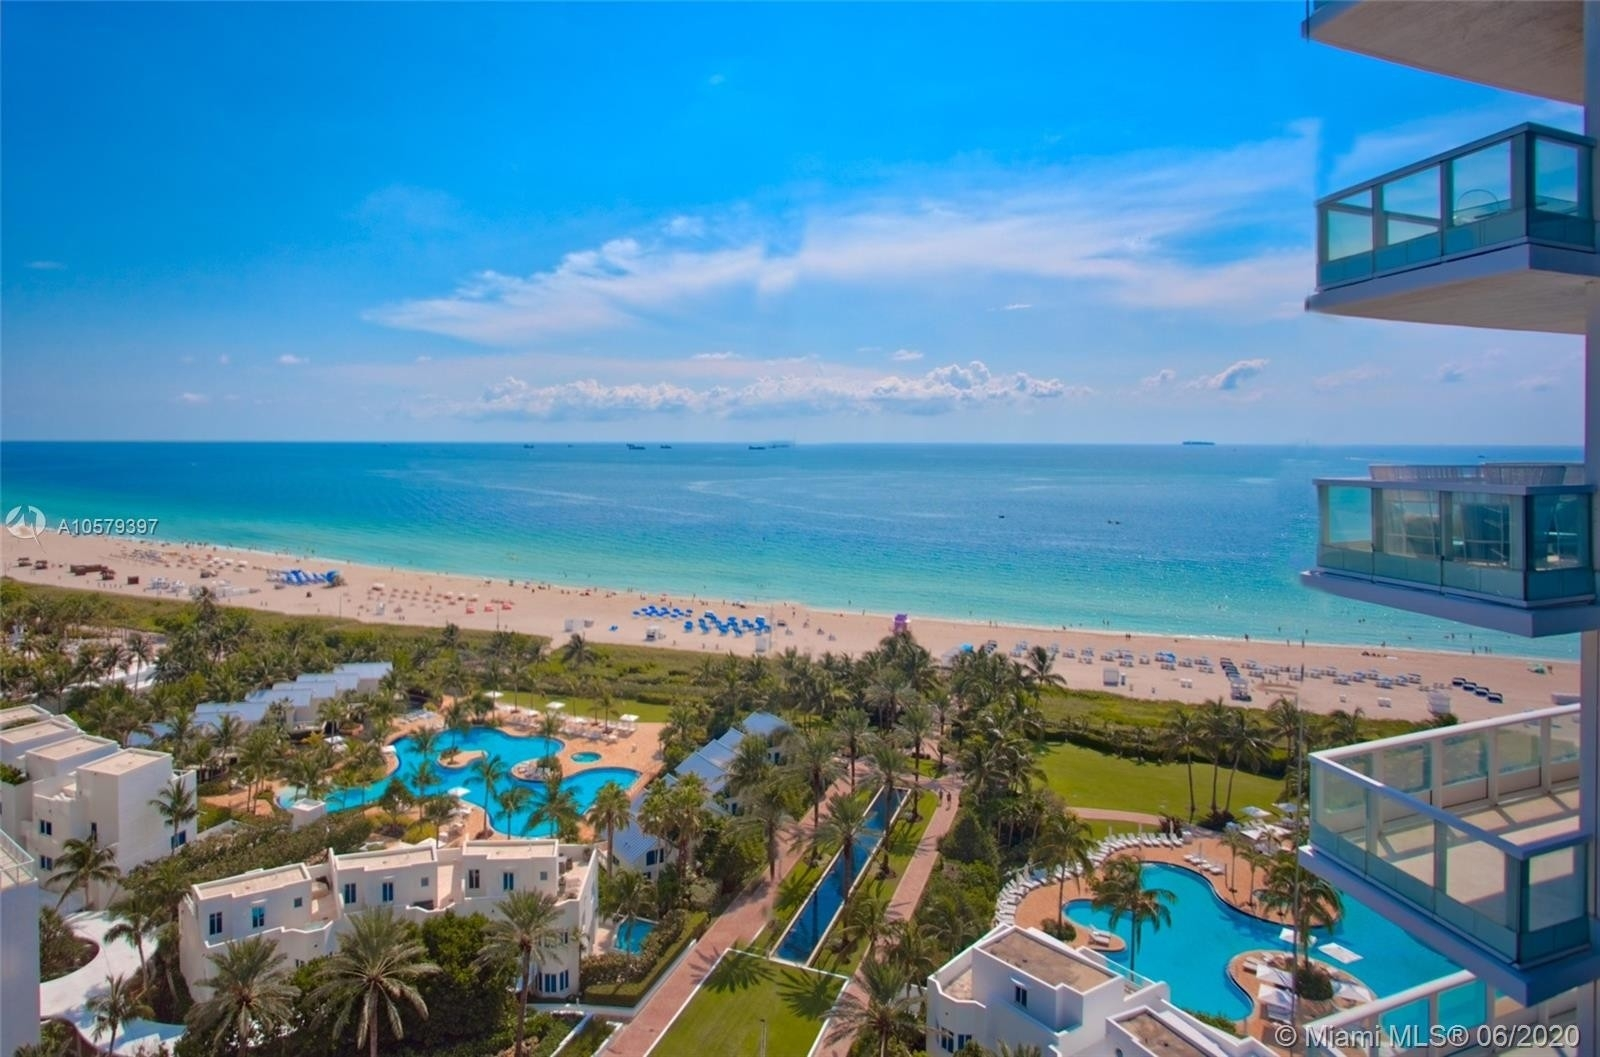 Property at 100 S Pointe Dr , 1610 South Point, Miami Beach, FL 33139